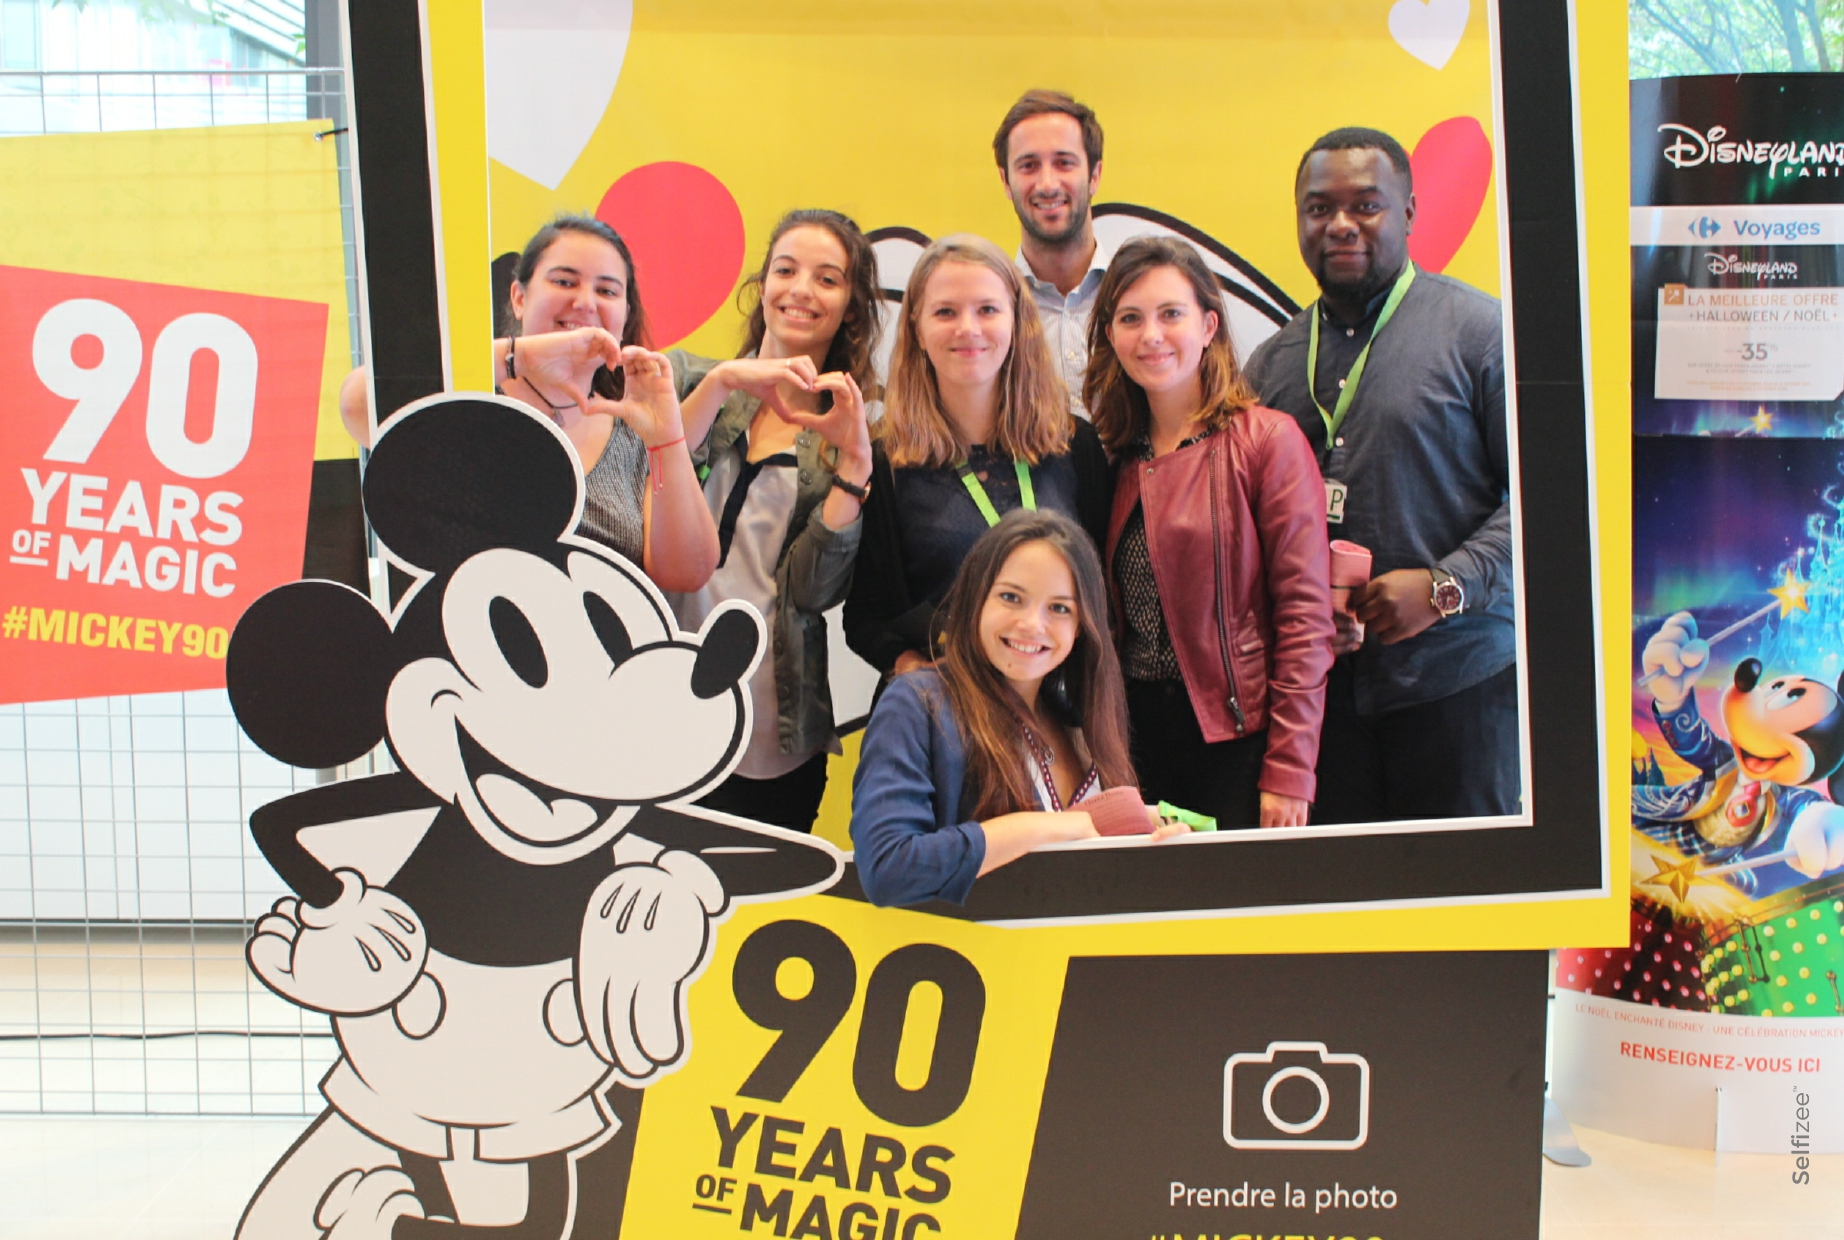 Animation photobooth photo Mickey anniversaire 90 ans au siège social de Carrefour à Massy en Île de France